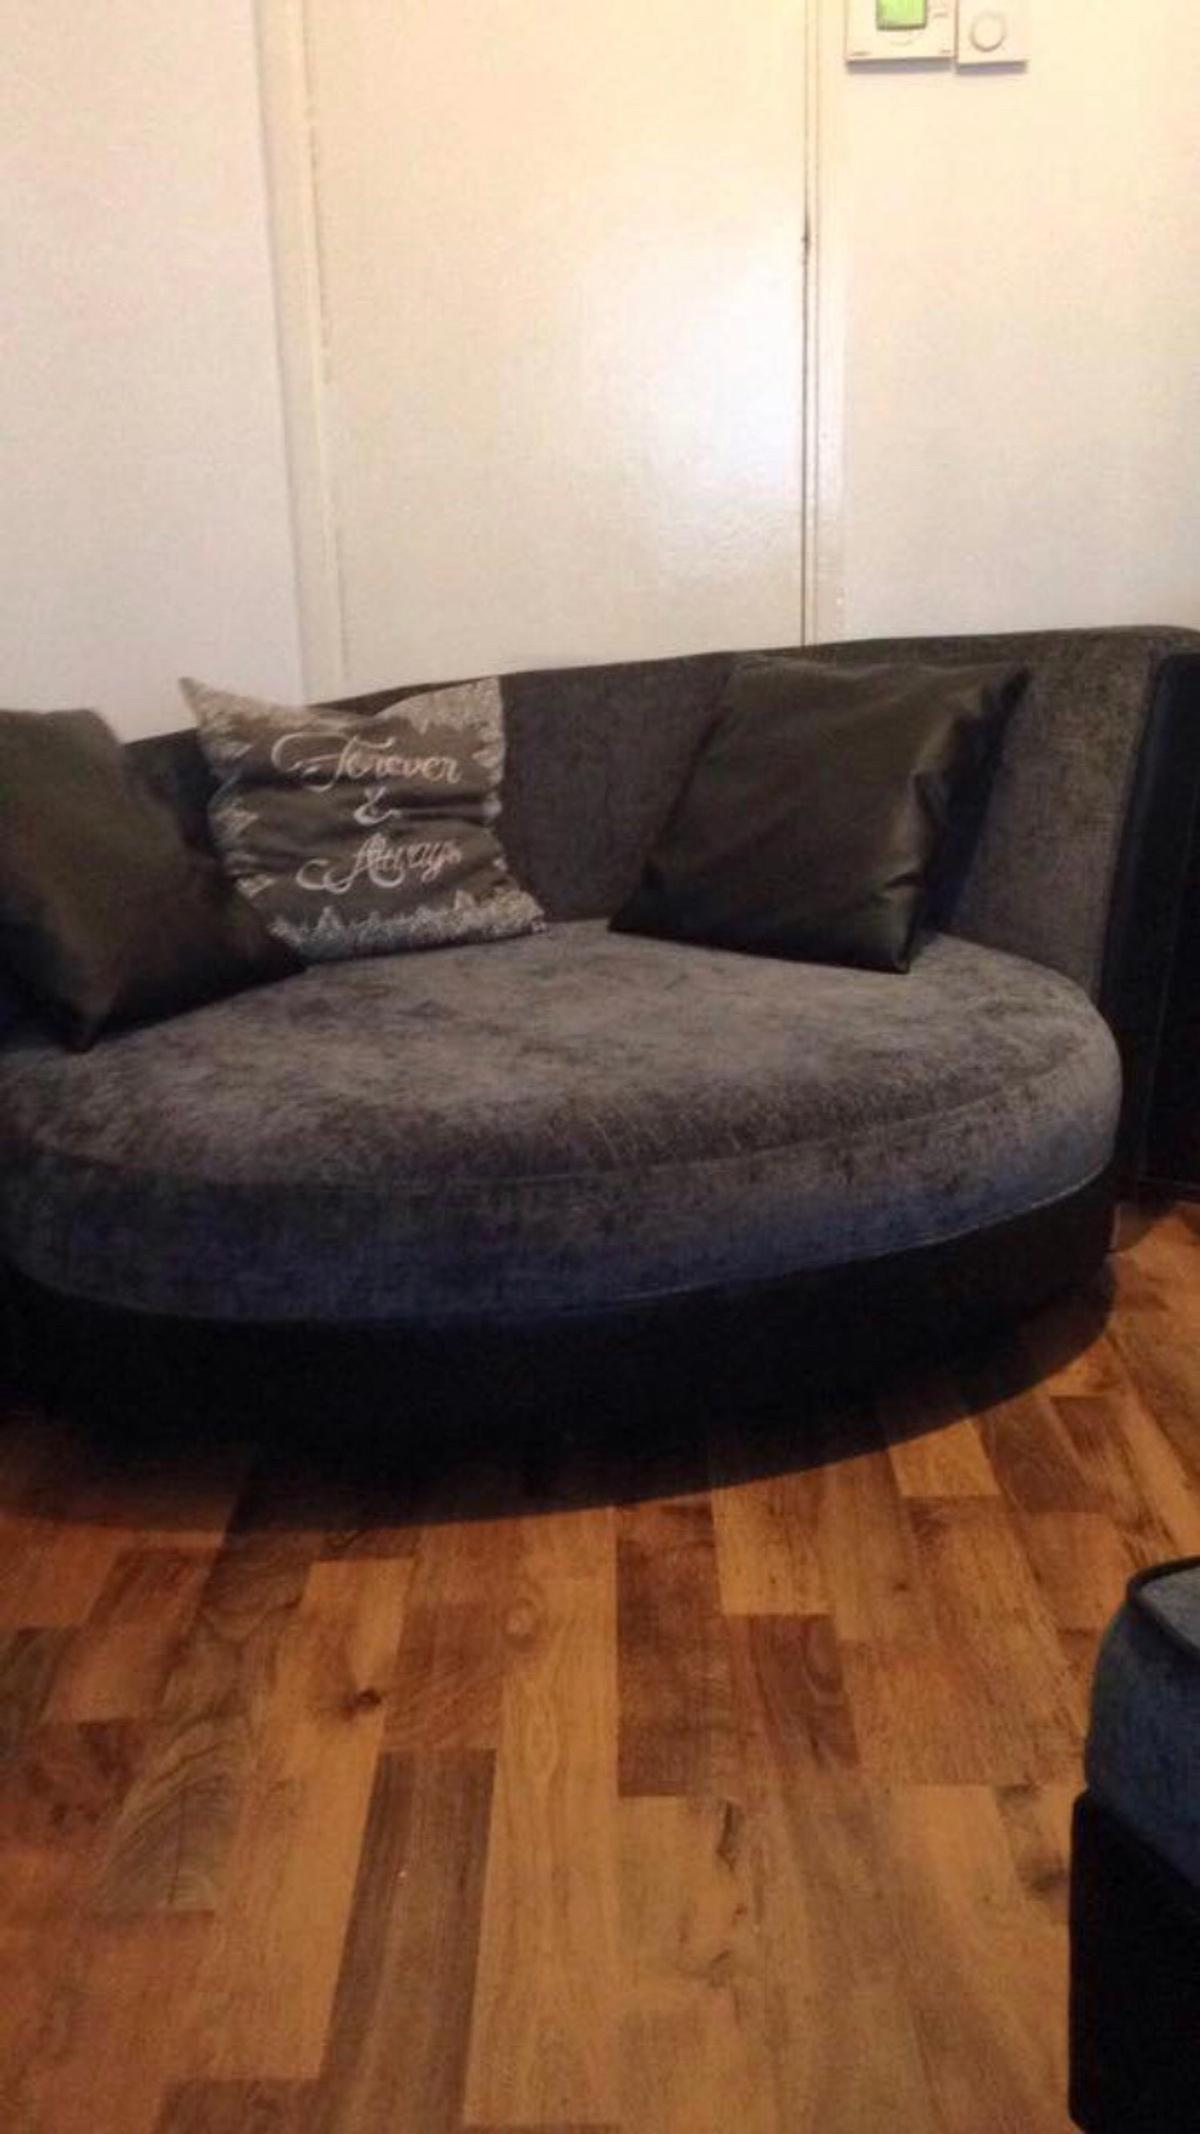 Dfs Cuddle Couch In N19 Islington For